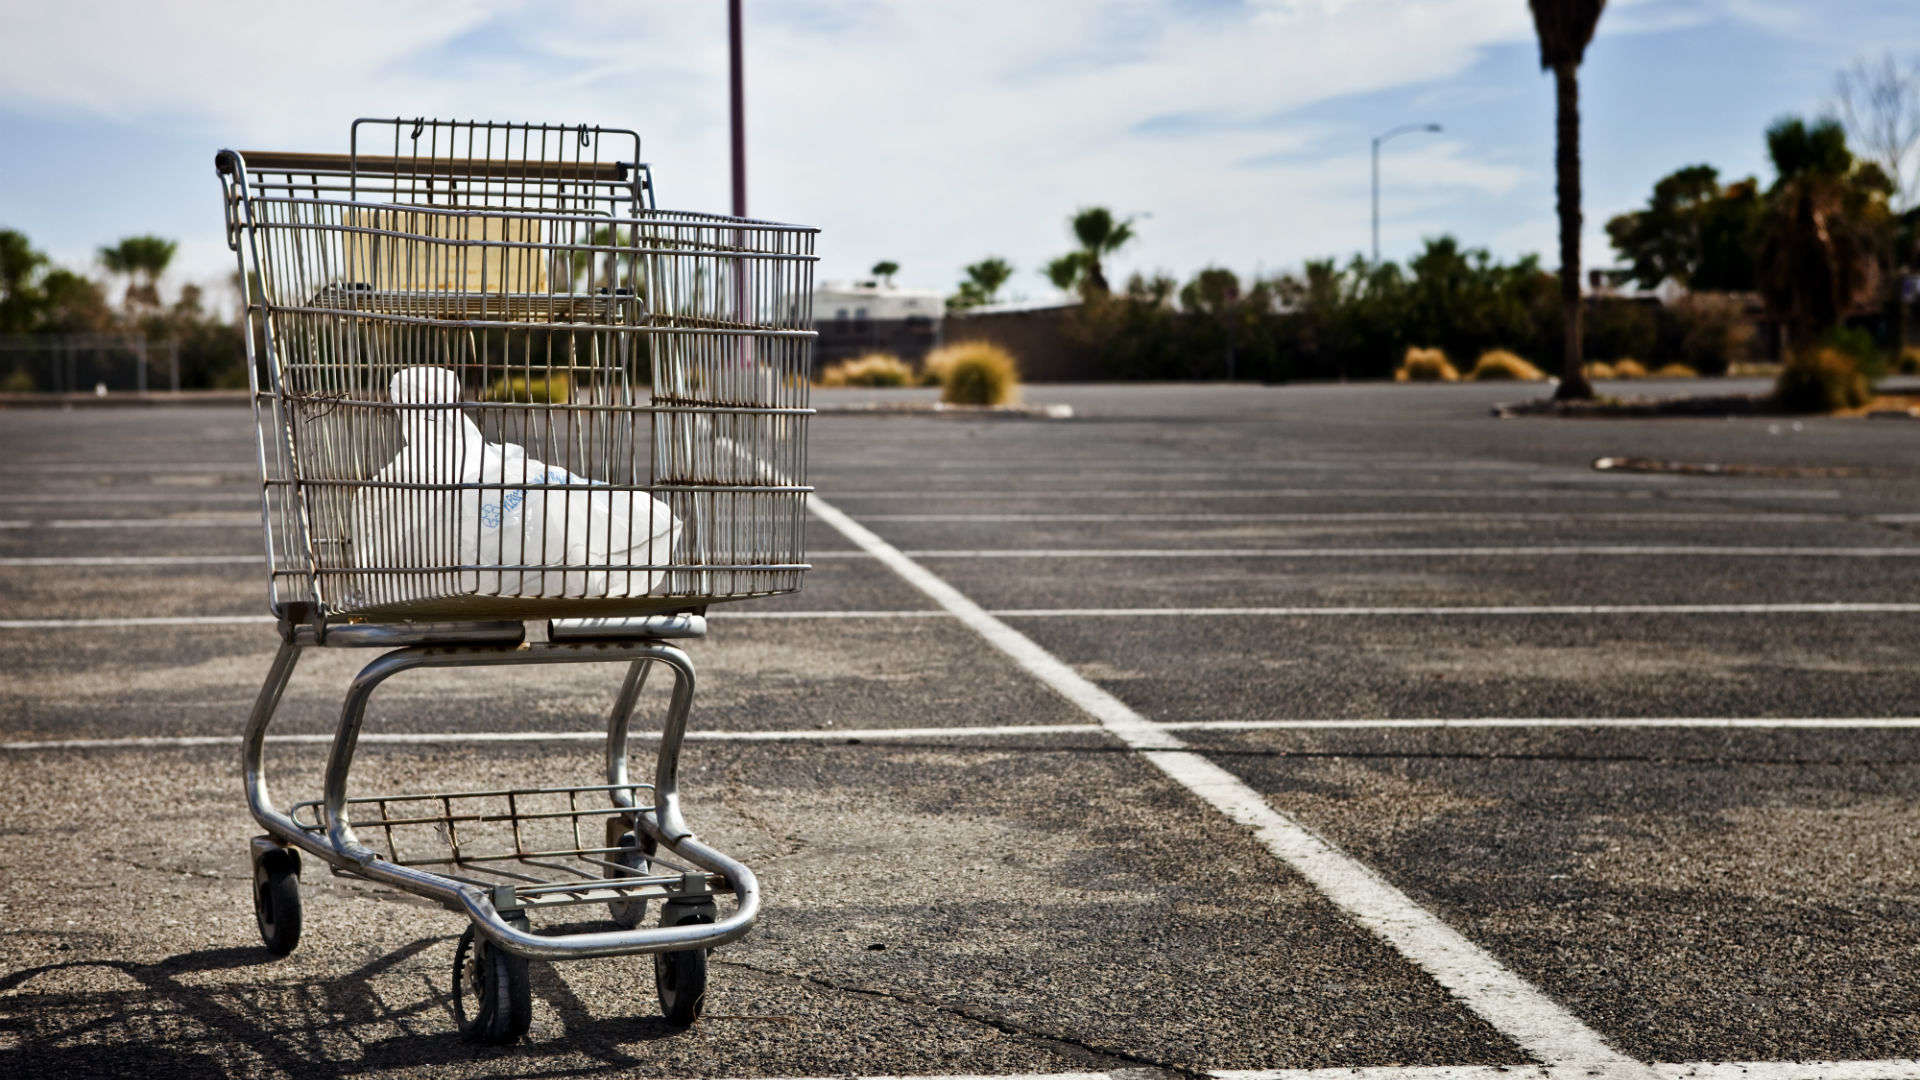 shopping-cart-abandon-ss-1920.jpg